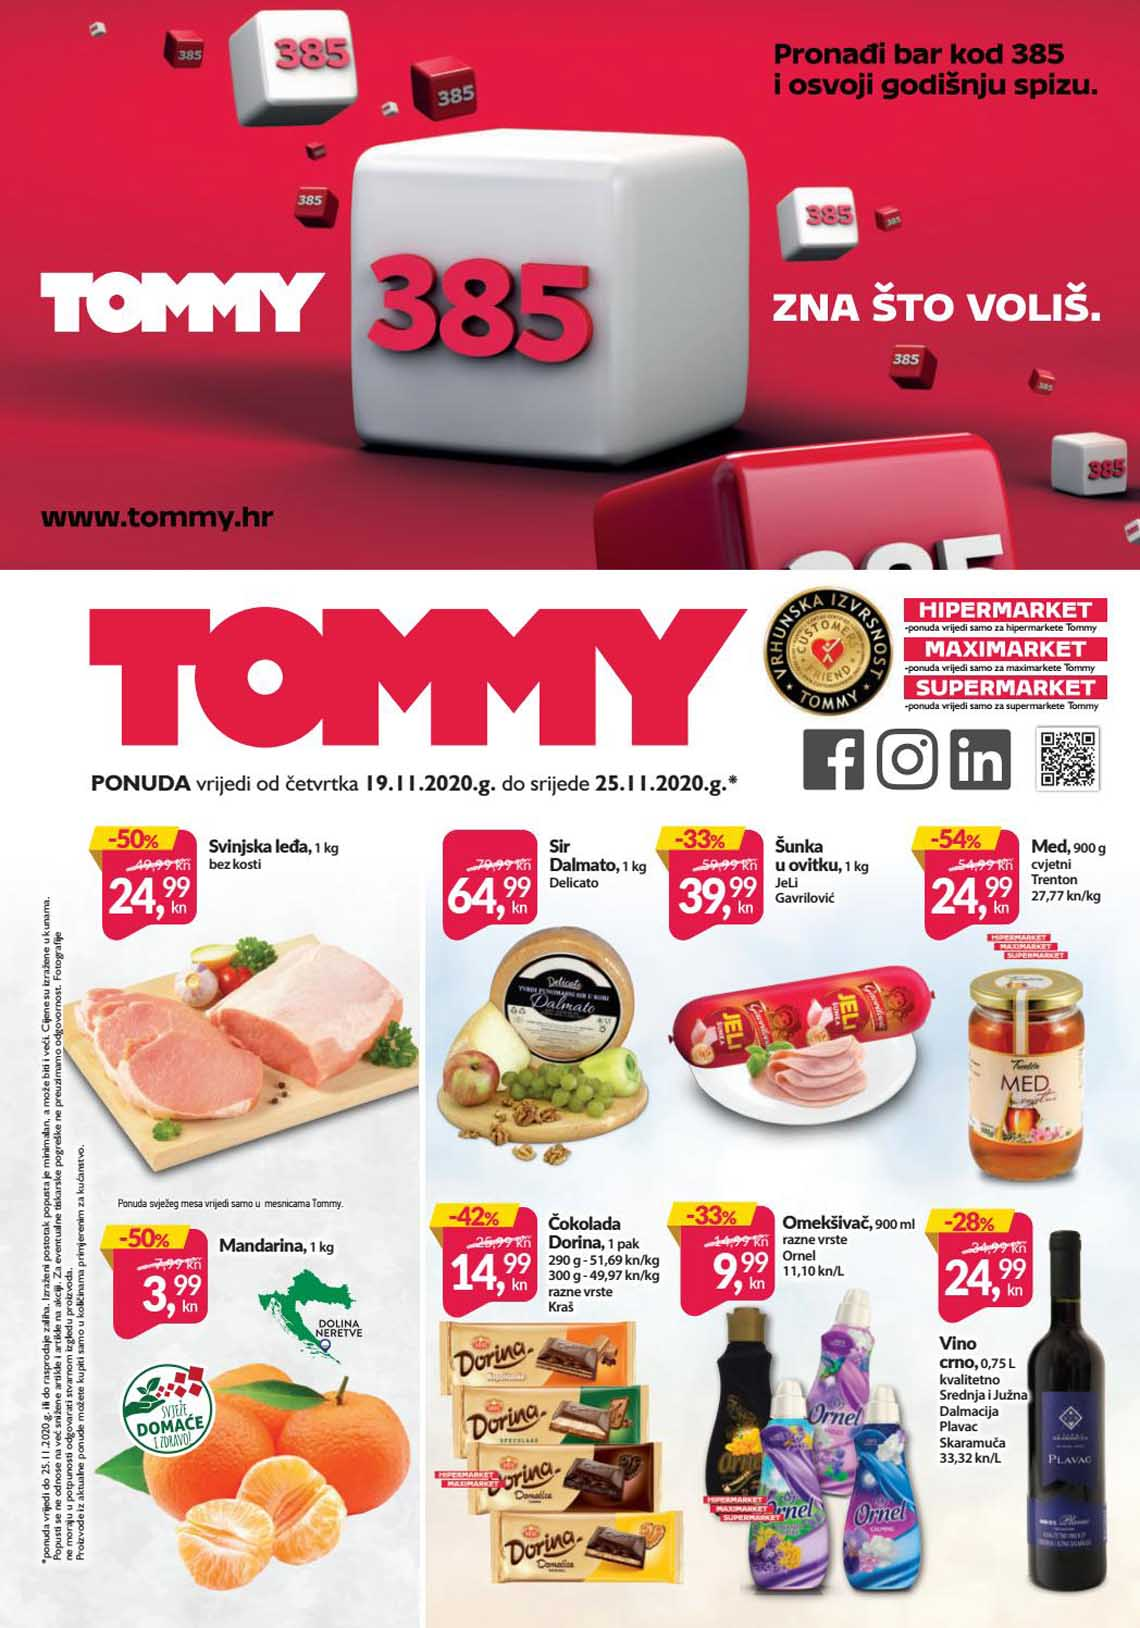 TOMMY KATALOG - SUPER PONUDA - AKCIJA SNIŽENJA DO 25.11.2020.